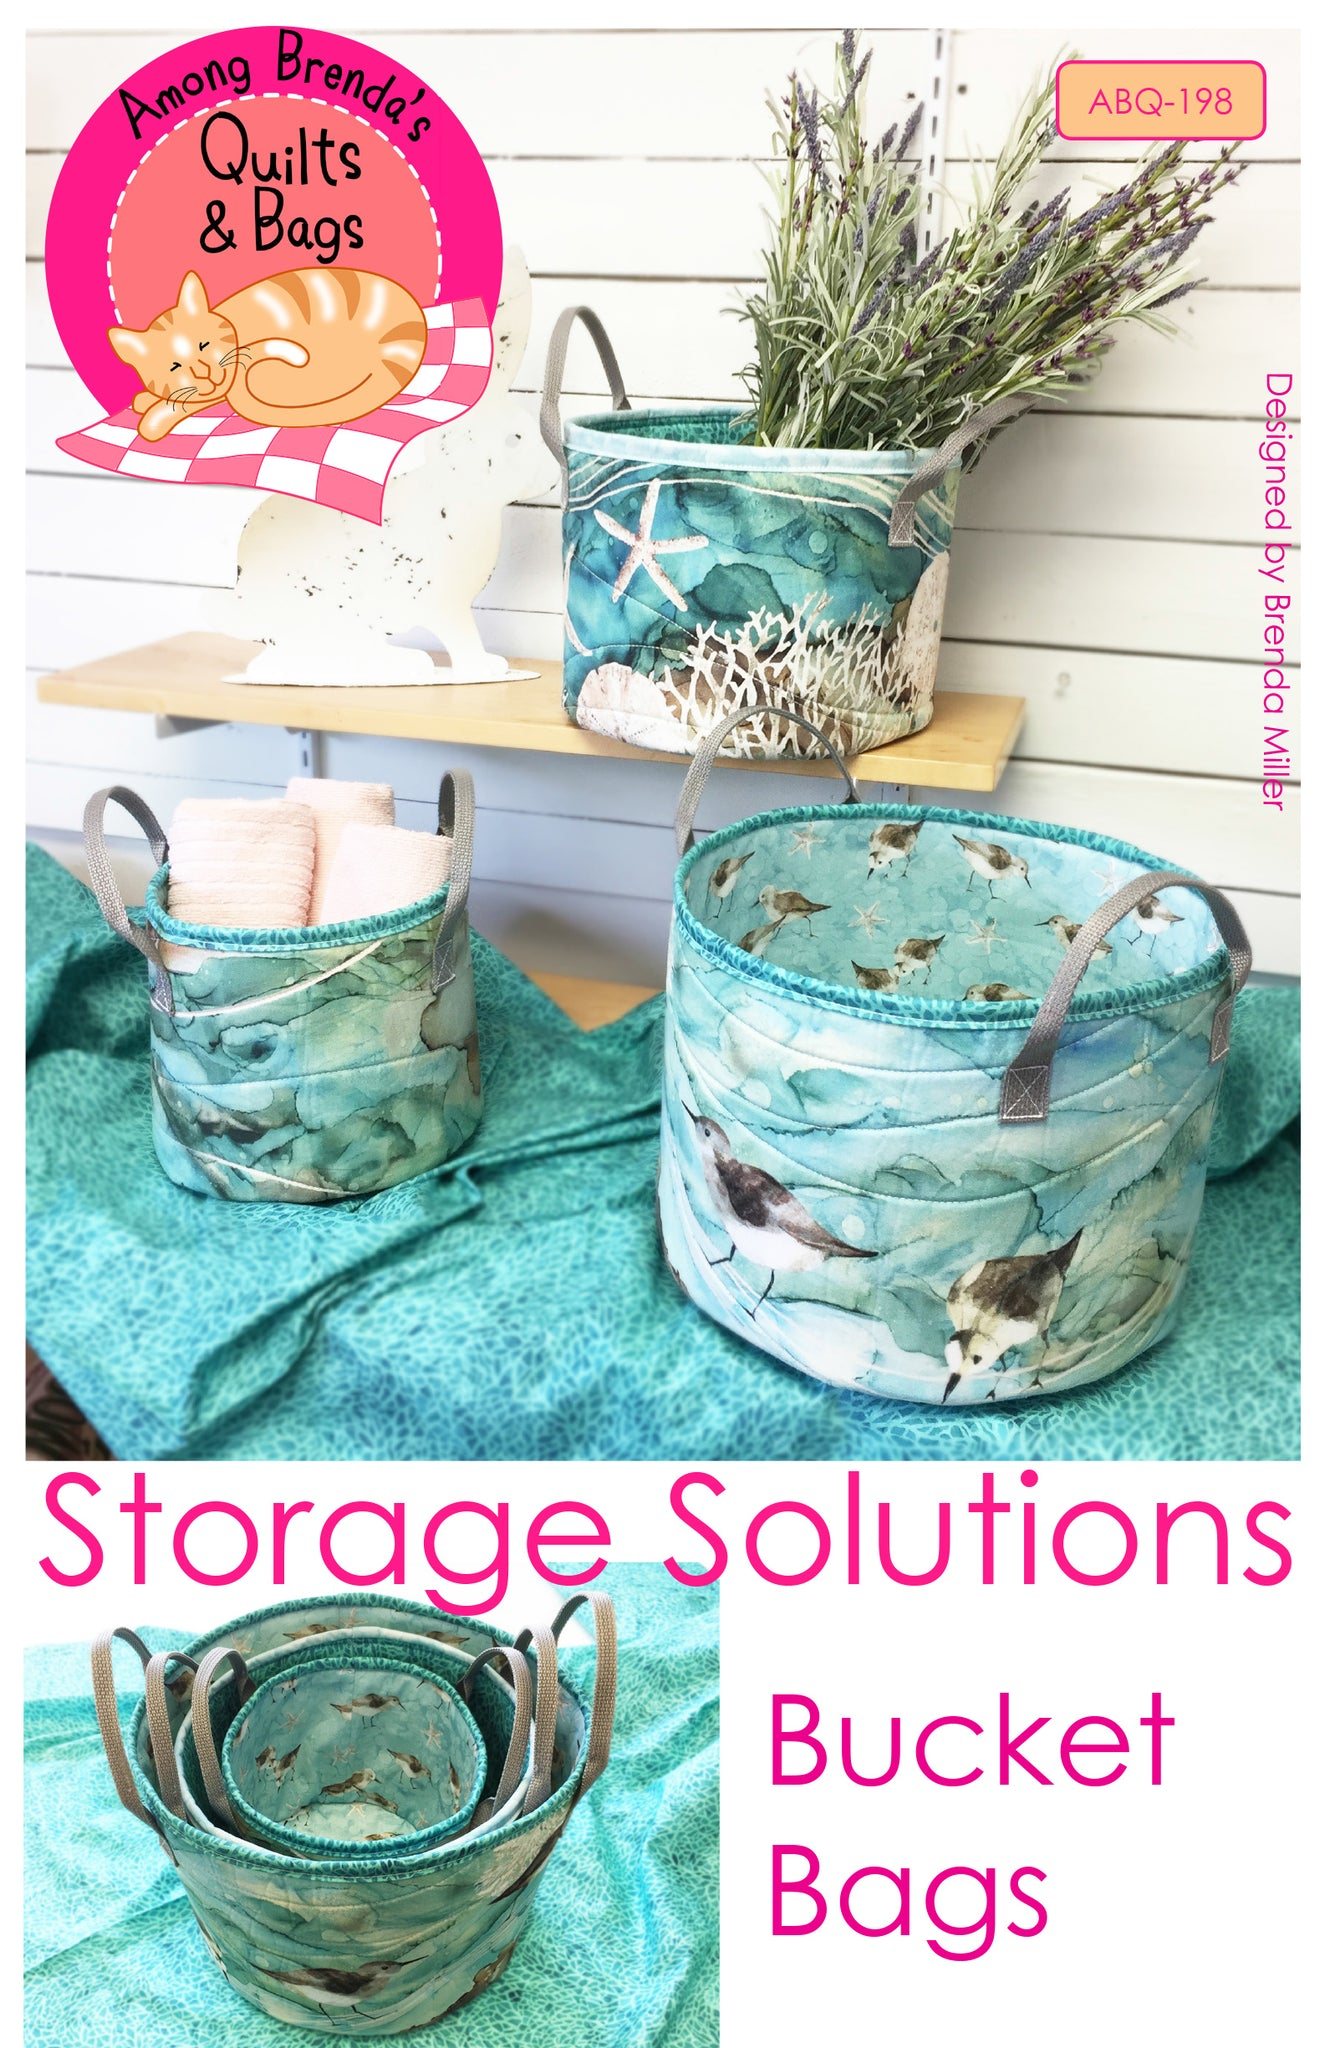 Pattern, Storage Solutions - Bucket Bags